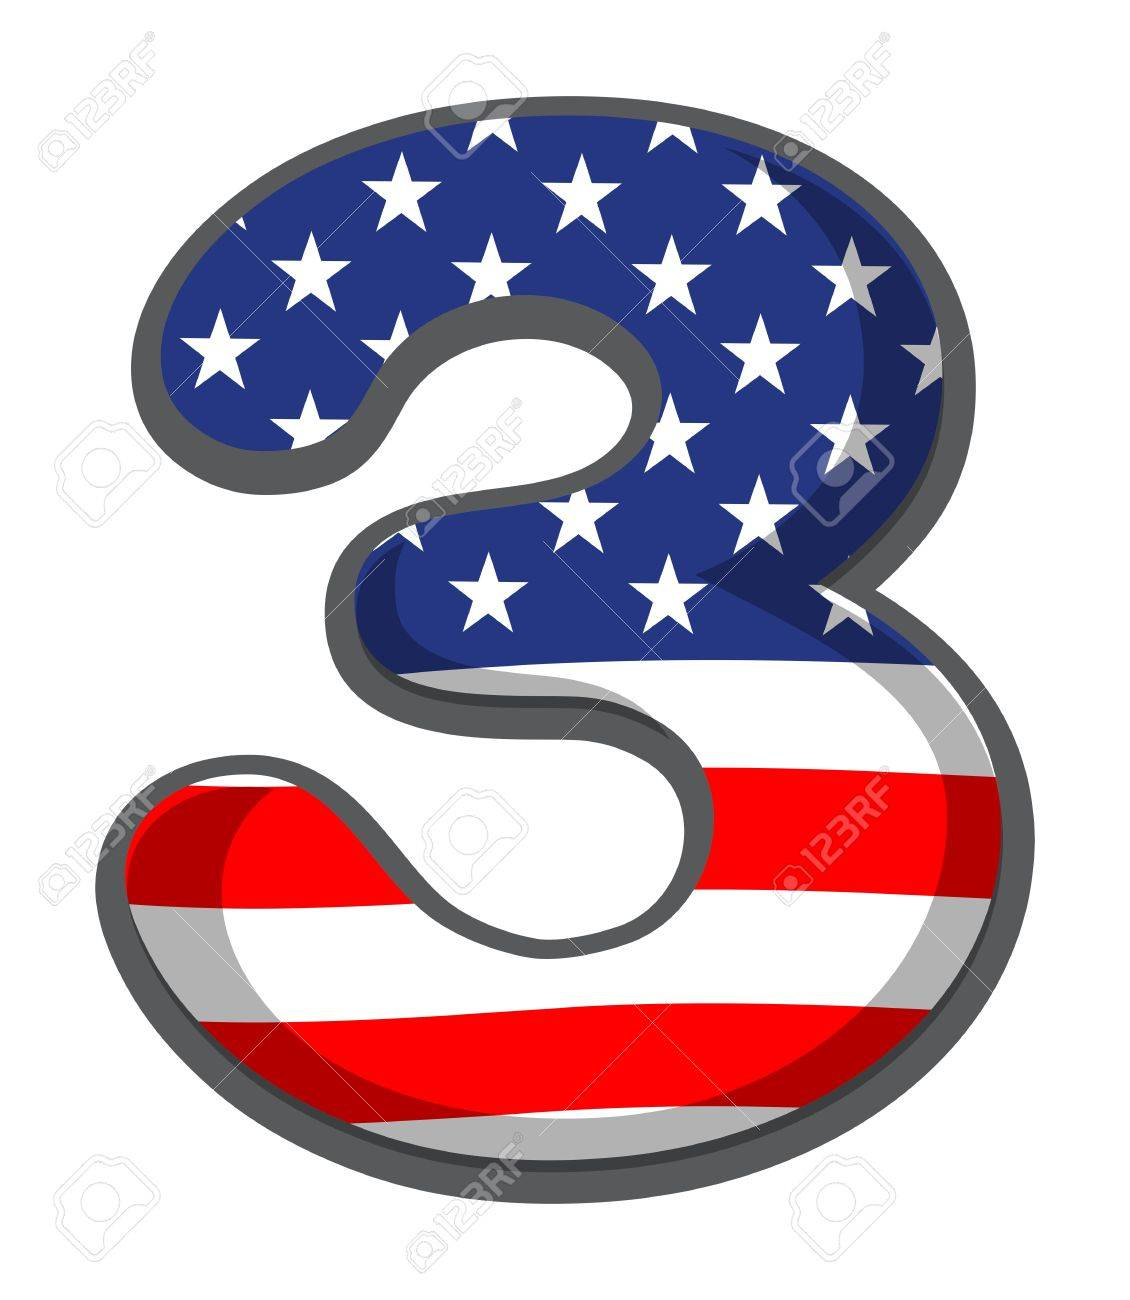 Illustration of a number three figure with the USA symbols on a white background Stock Vector - 19301238